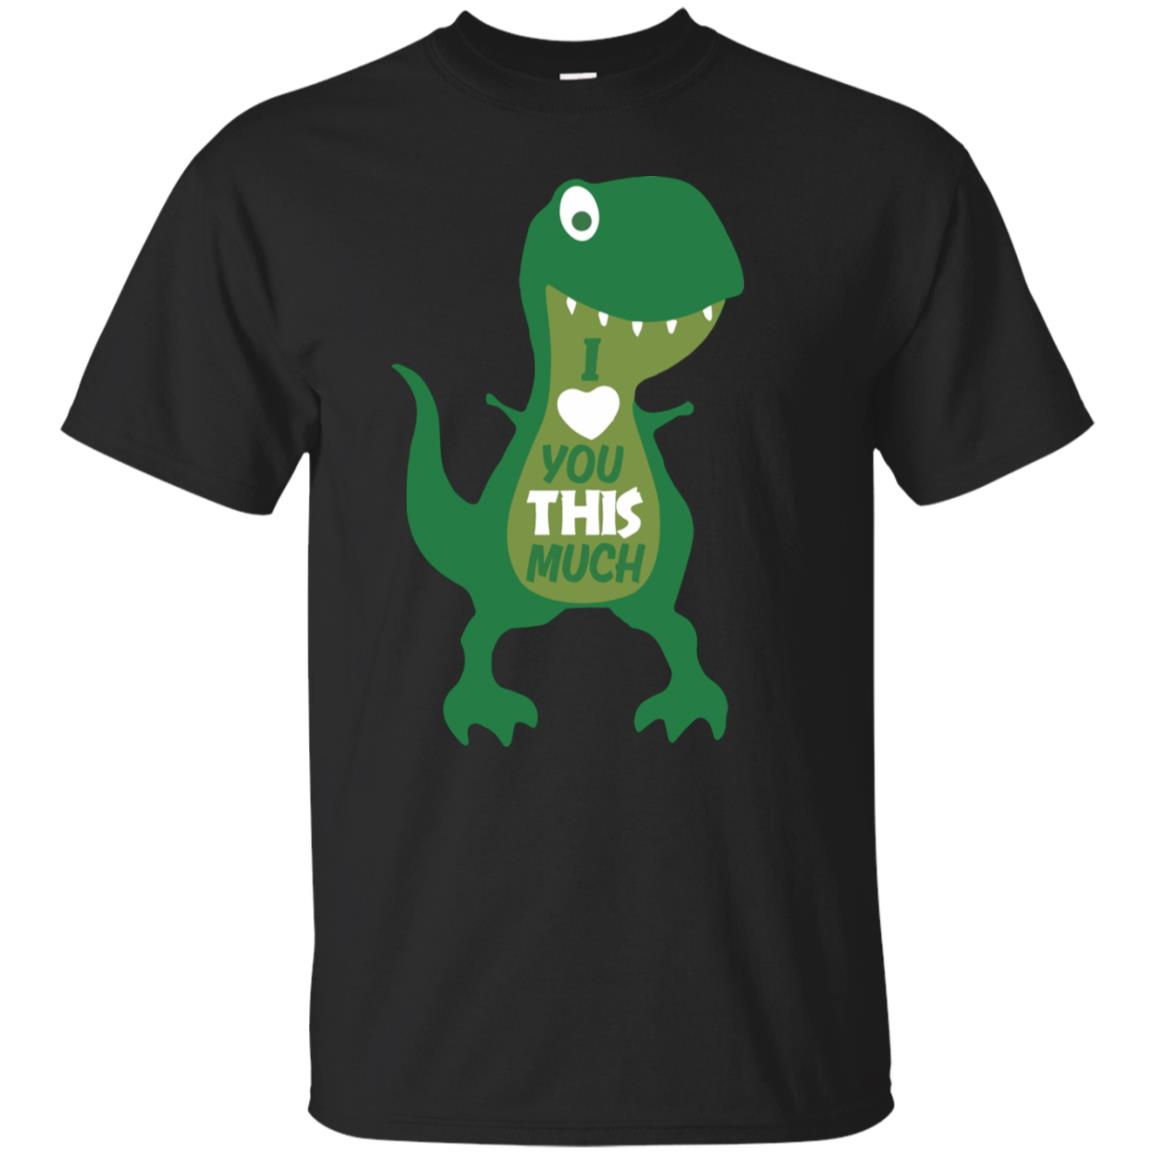 ee88f51b3 T Rex I Love You This Much Shirt - 10% Off - FavorMerch